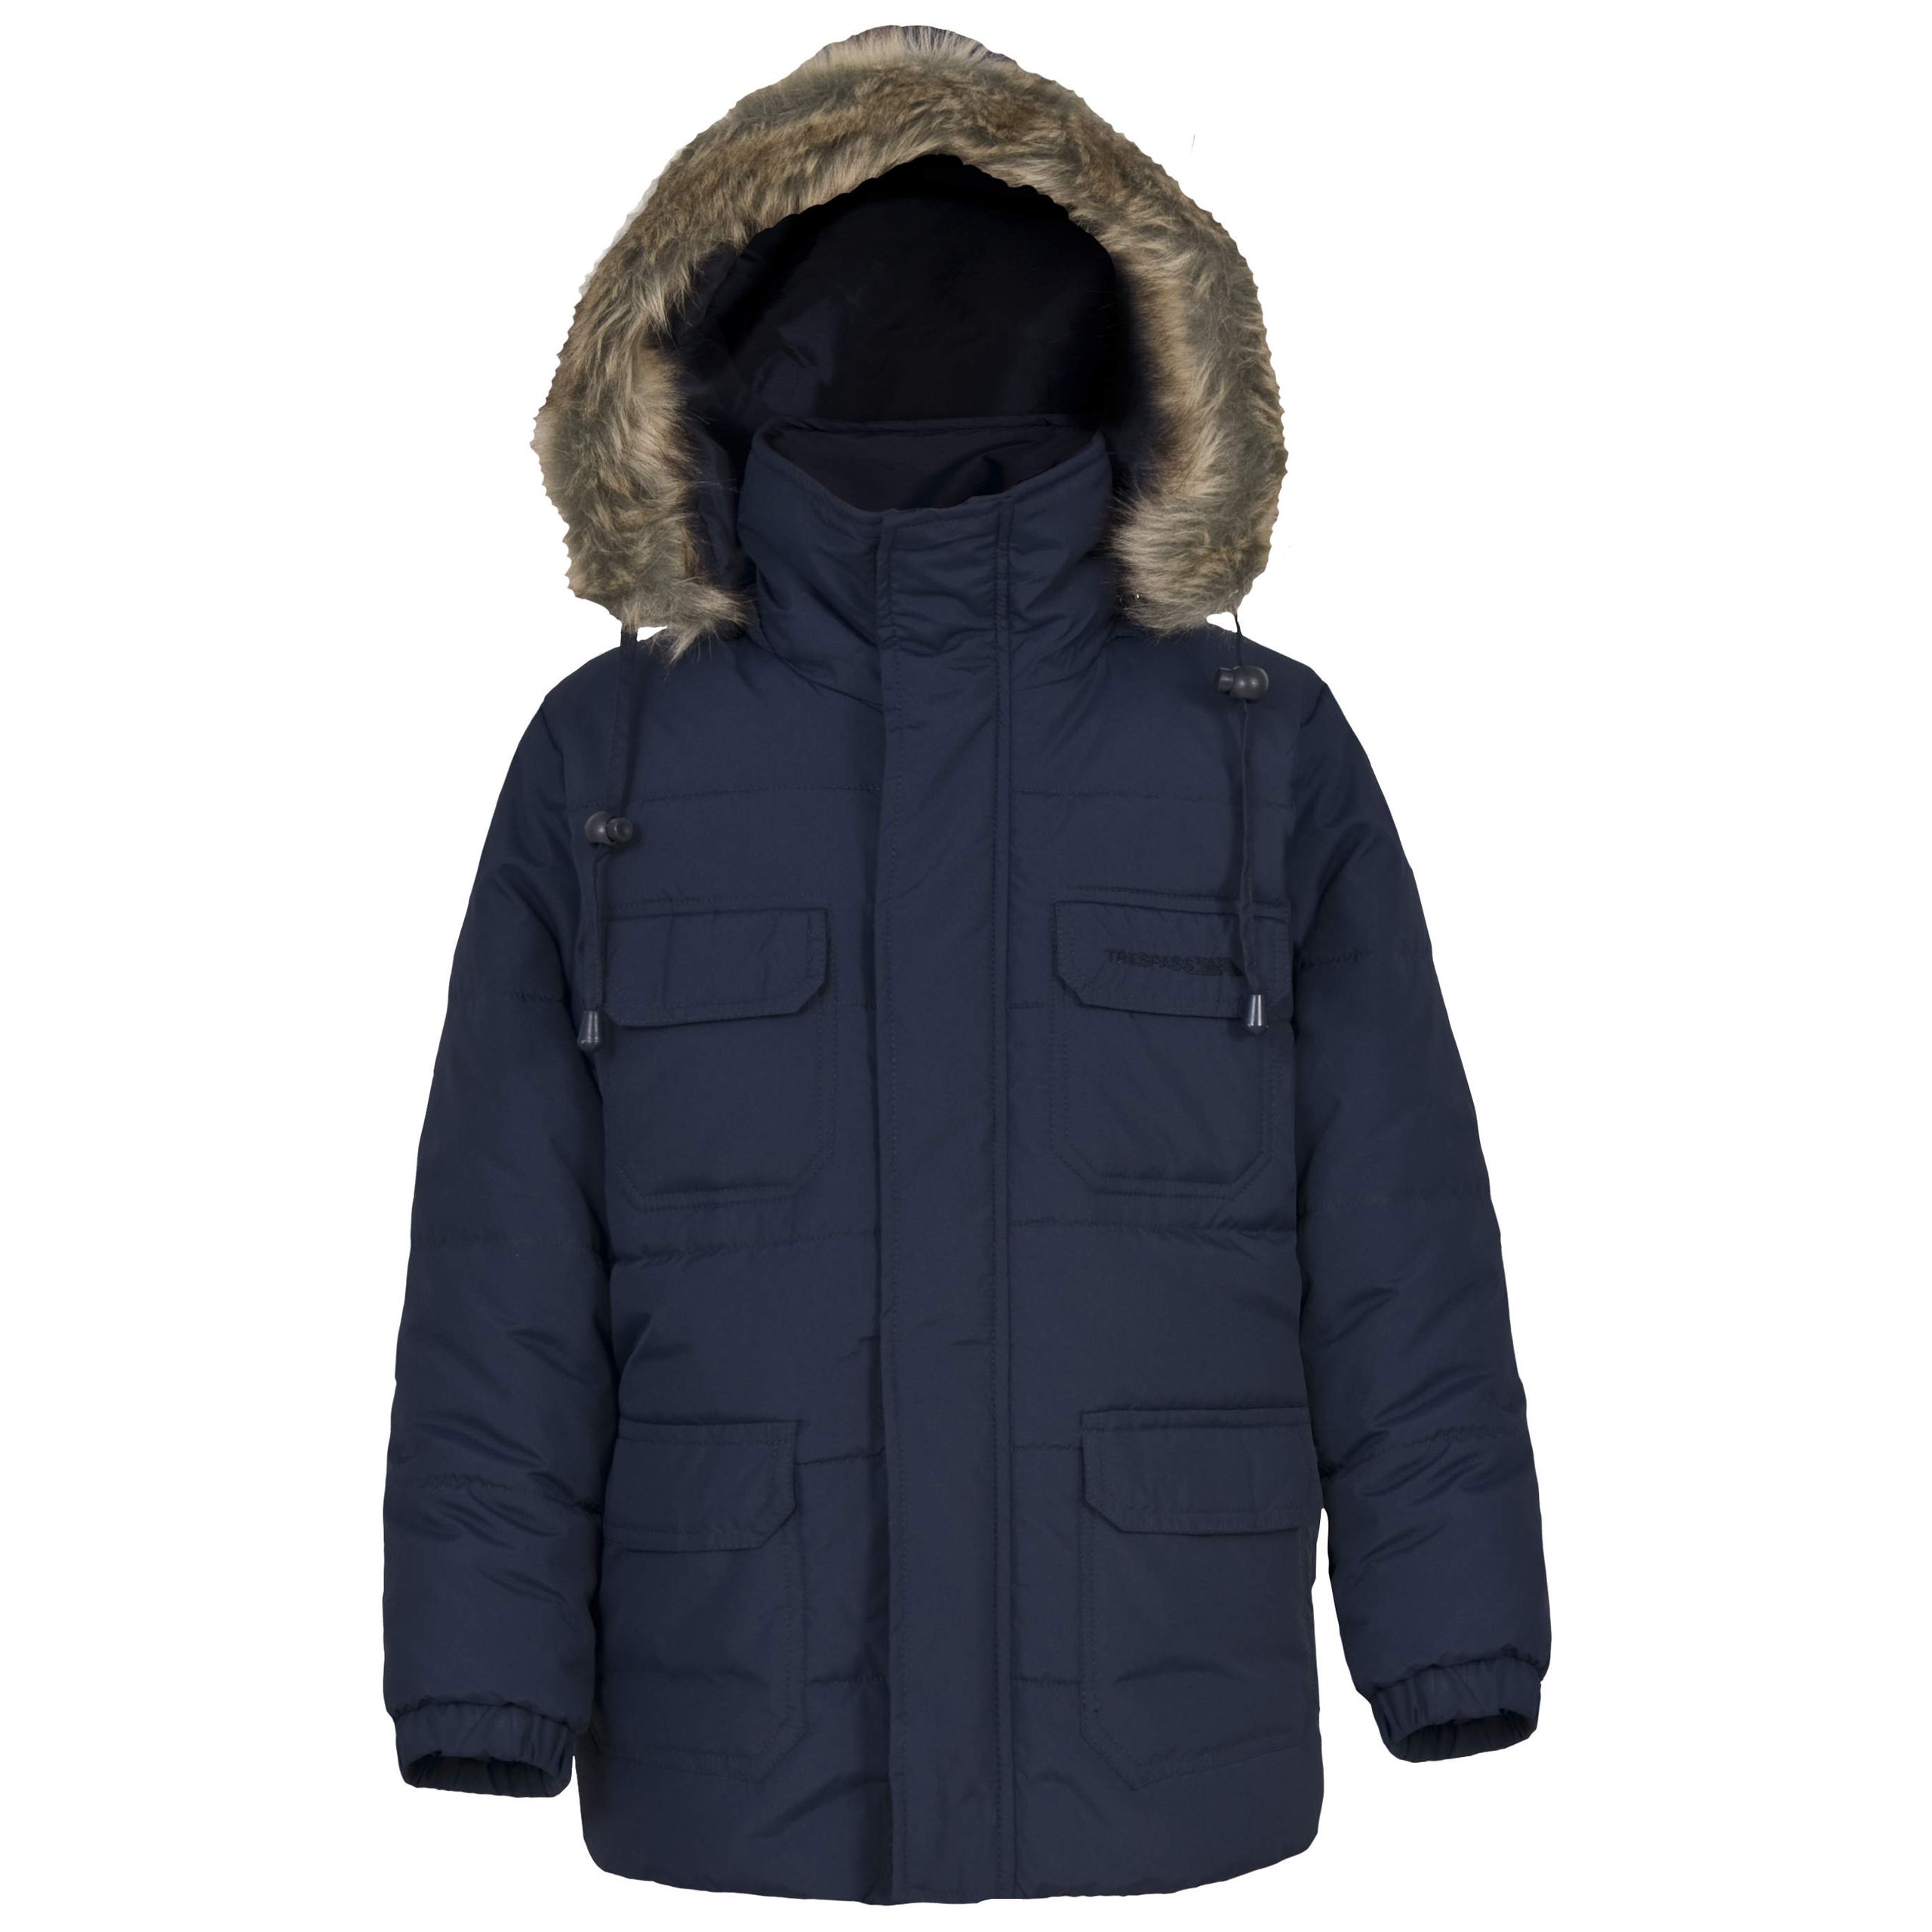 Trespass ANZIO Boys Padded Windproof Casual Coat Waterproof Jacket | EBay